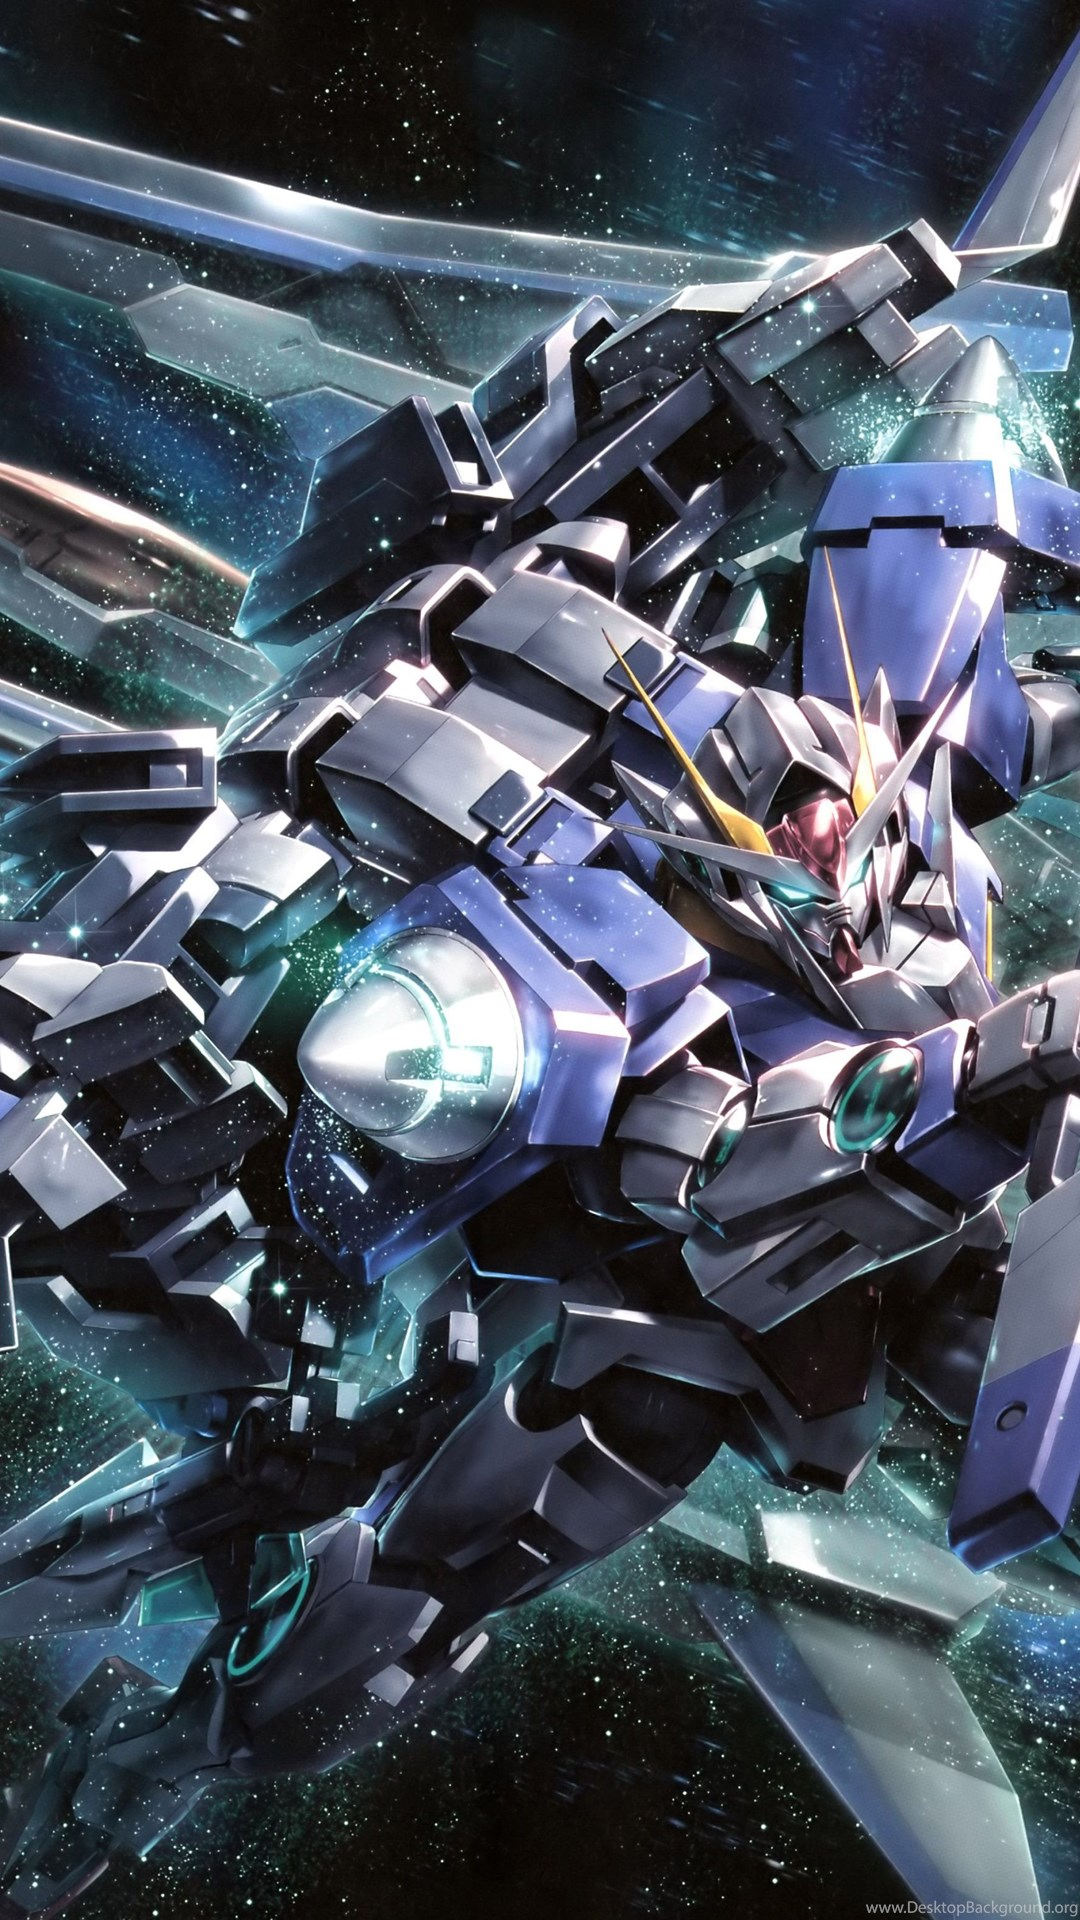 Galaxy S8 Wallpaper Hd Gundam Hd Wallpaper Jpg Desktop Background